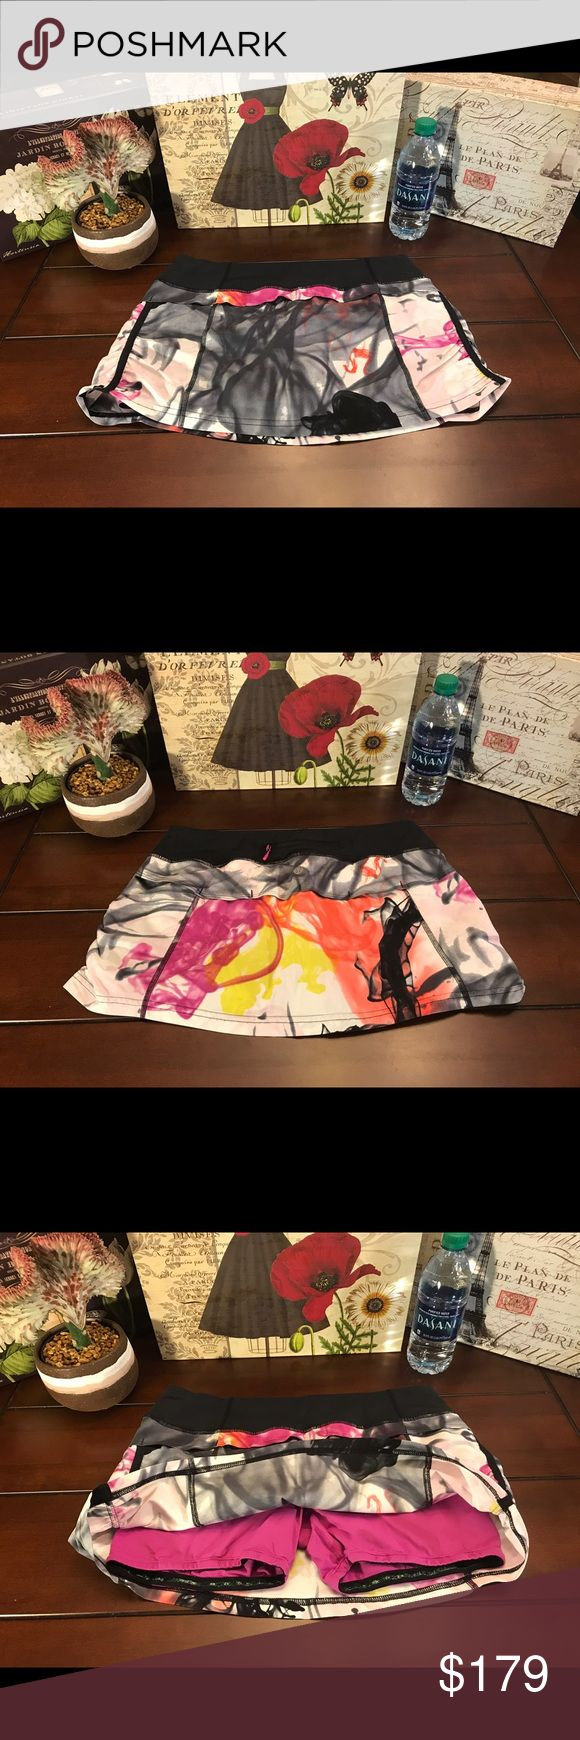 Lululemon Jog Skirt-Unicorn Tears, Size 6 Lululemon Jog Skirt-Unicorn Tears, Size 6  I do not trade.   Lulu Jog skirt in the very rare and awesome multi-color Unicorn Tears print. This skirt is both cute and practical with shorts underneath and multiple pockets (two hidden interior, one zipper pocket in back). There is also ruching on the sides. Fabulous condition! ☺️  Length-11.5 inches   Waist- 29 inches (14.5 inches across) lululemon athletica Skirts